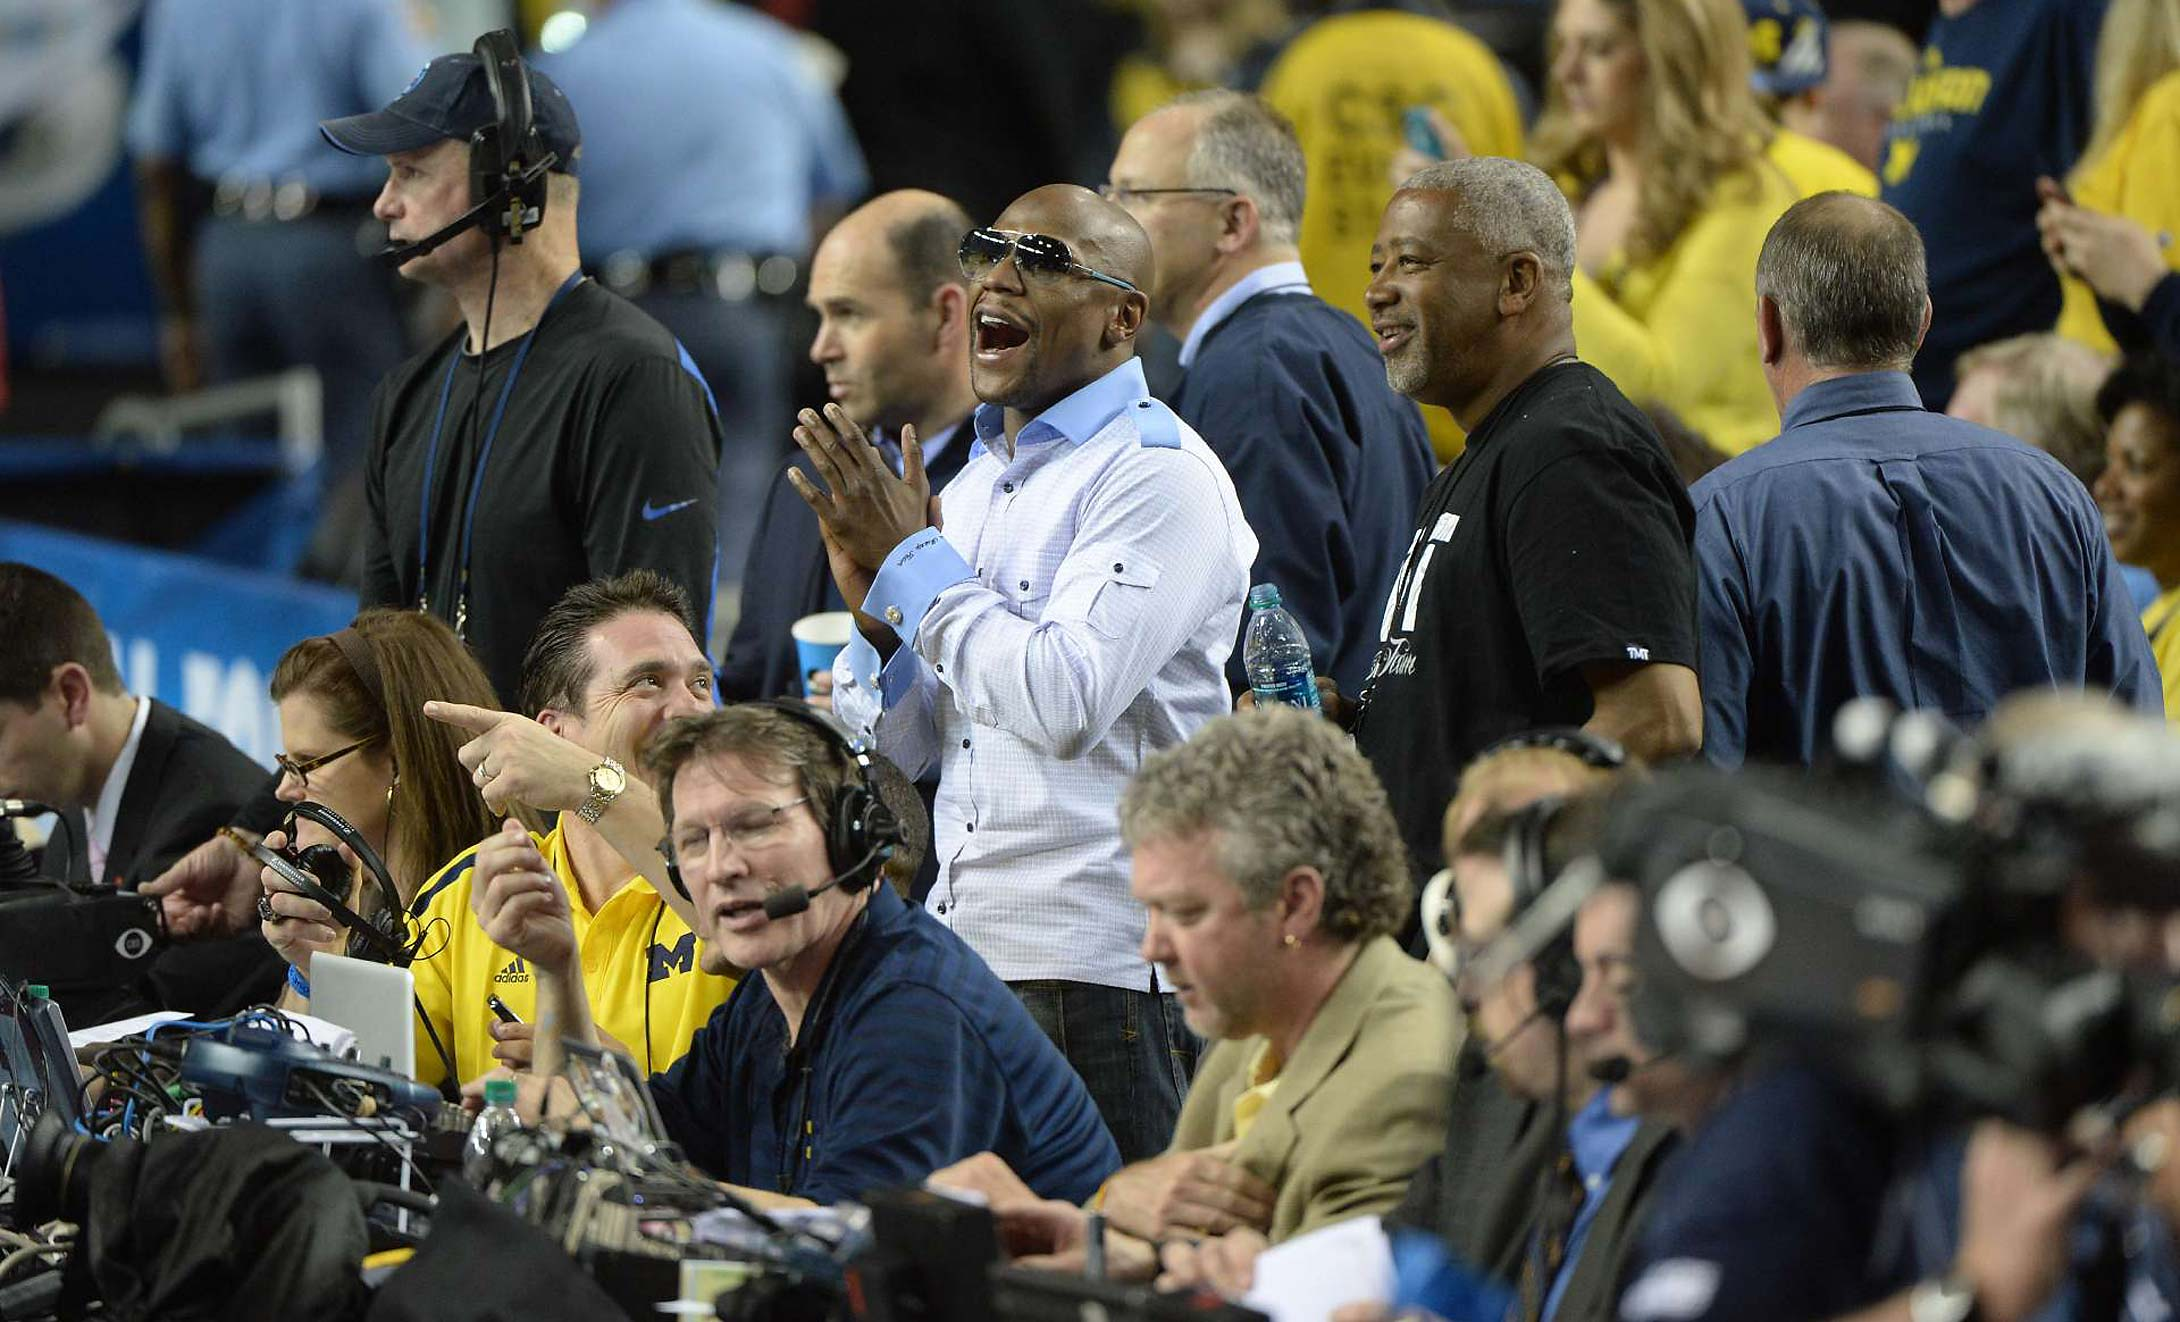 Floyd Mayweather Jr. at the 2013 Syracuse-Michigan game in Atlanta.